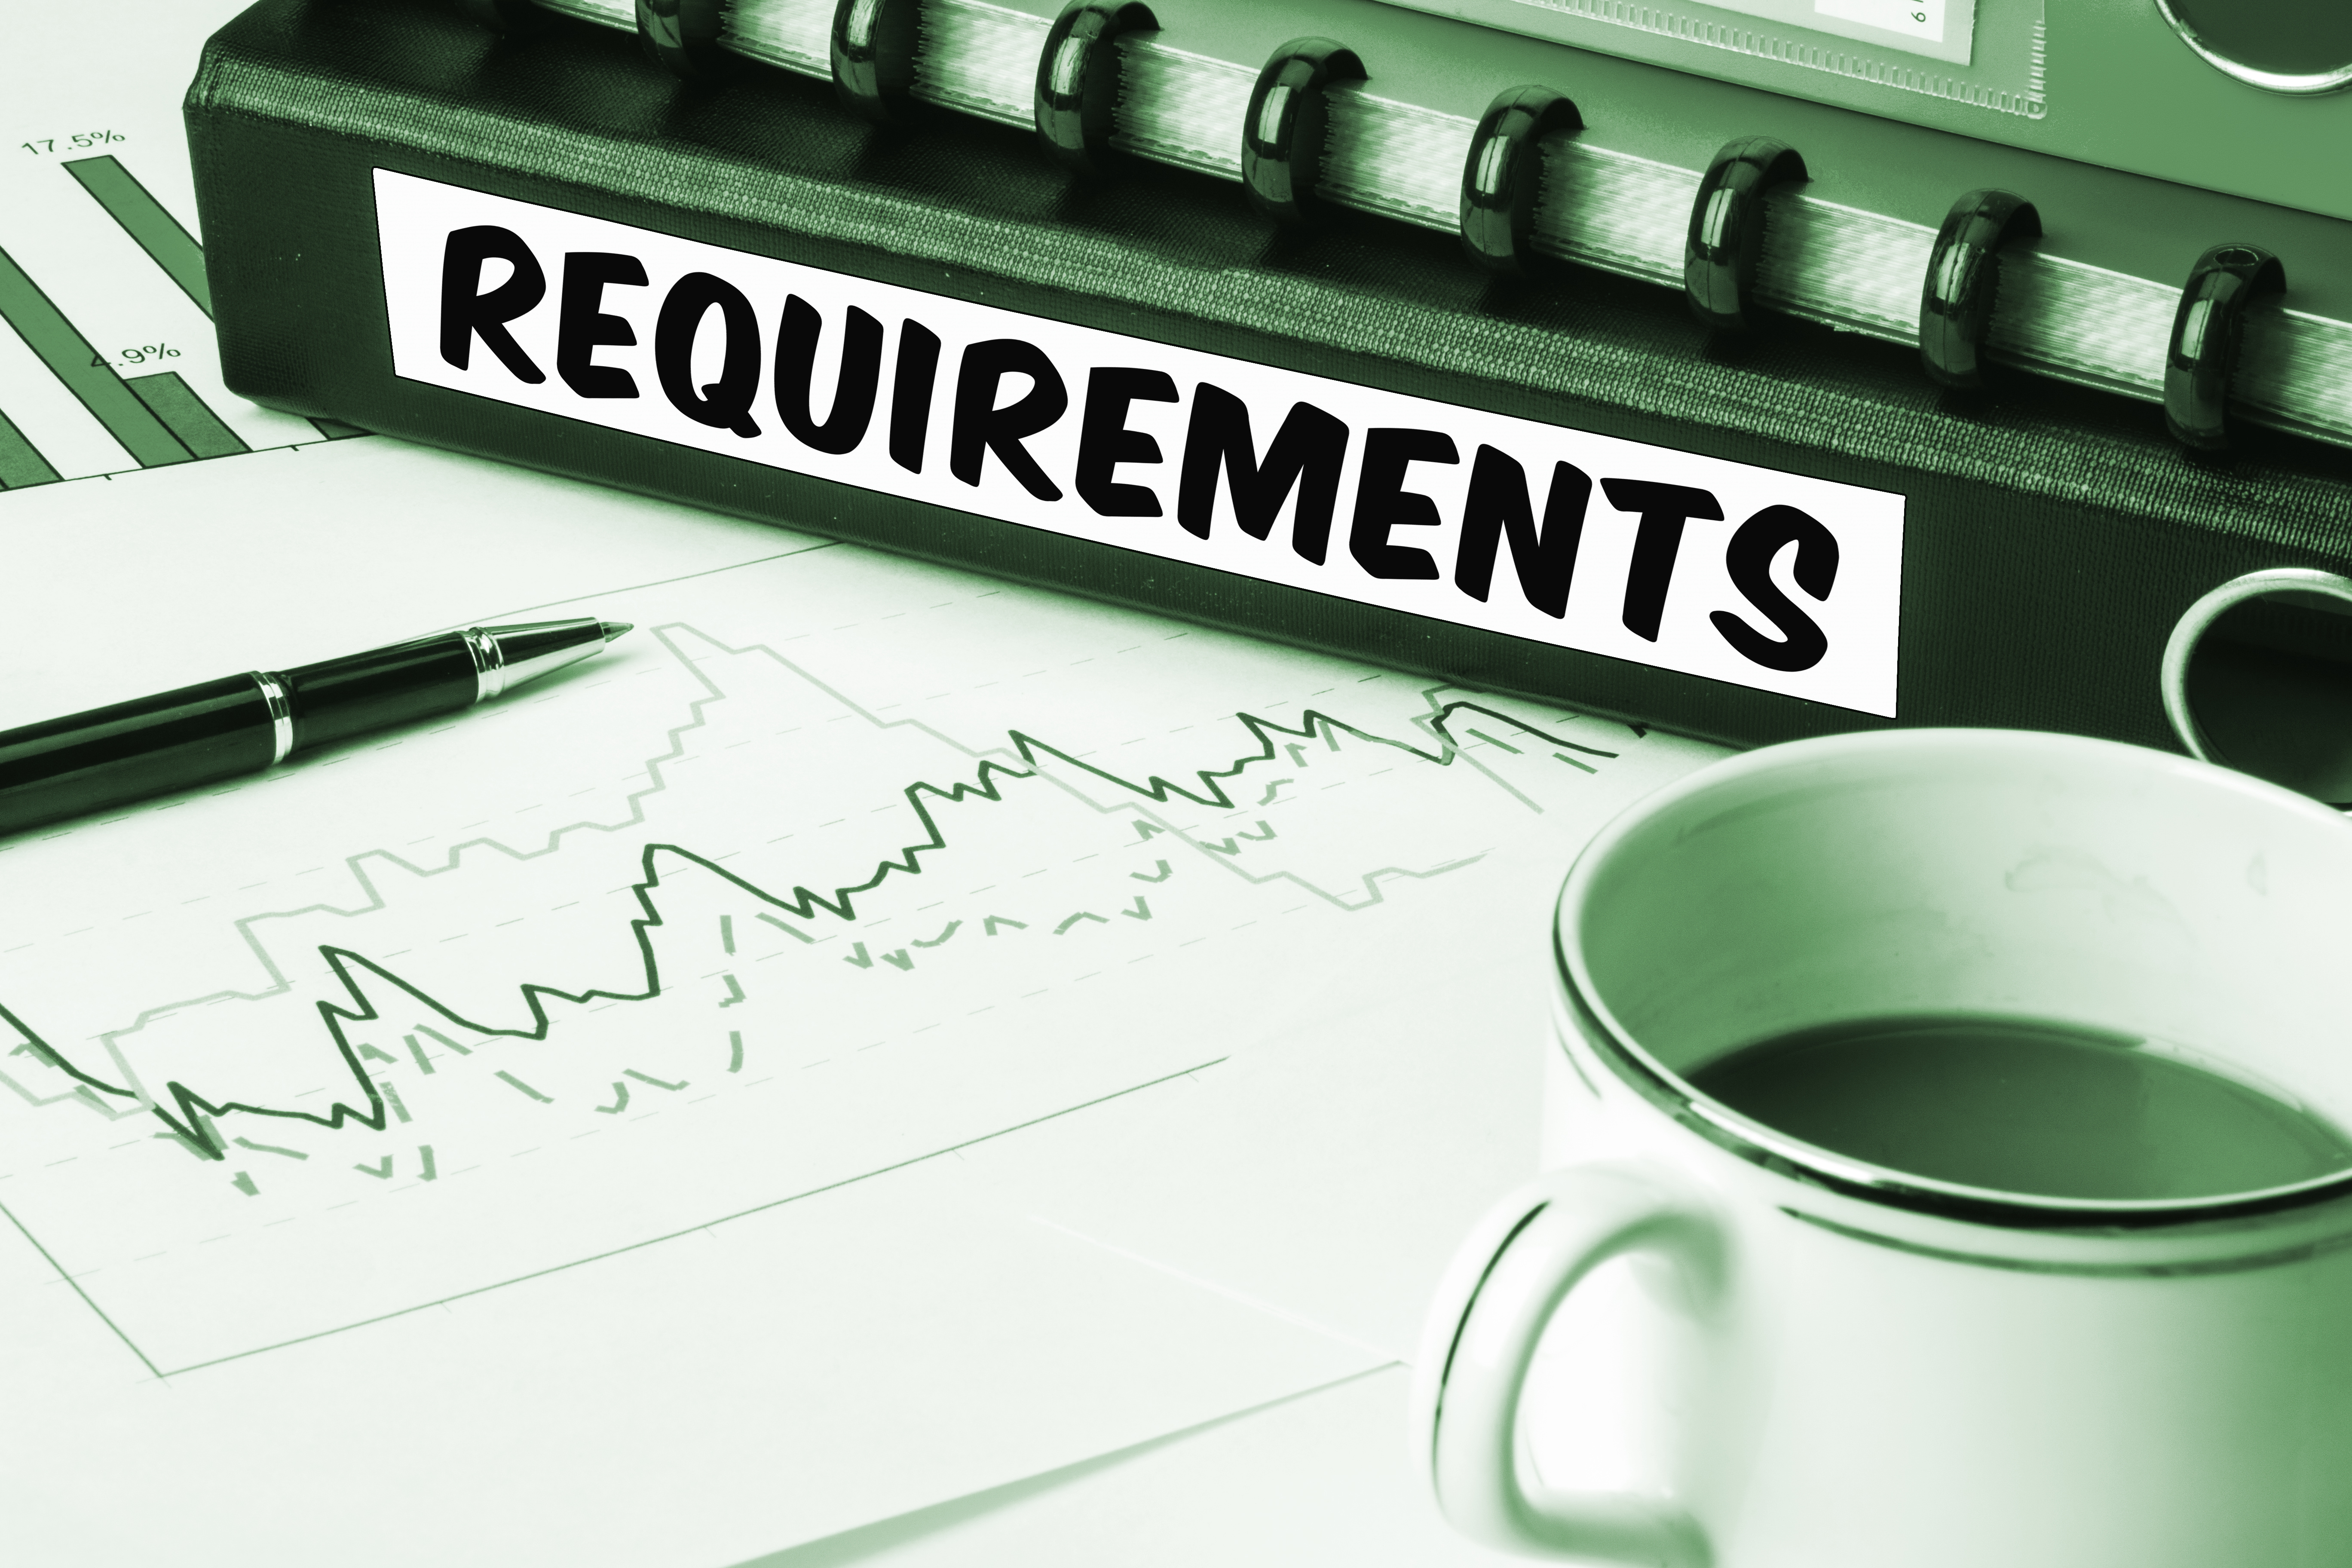 Requirements  Fundraisingforce. Mobile App Architecture Budget Moving Services. Cheap Cd Duplication Services. How Much Do Movie Directors Make. Florida Personal Injury Attorneys. Refinance Federal Student Loans. Clinical Research Management Group. Germany In German Language Gary Null Vaccines. What Do You Need To Qualify For A Home Loan